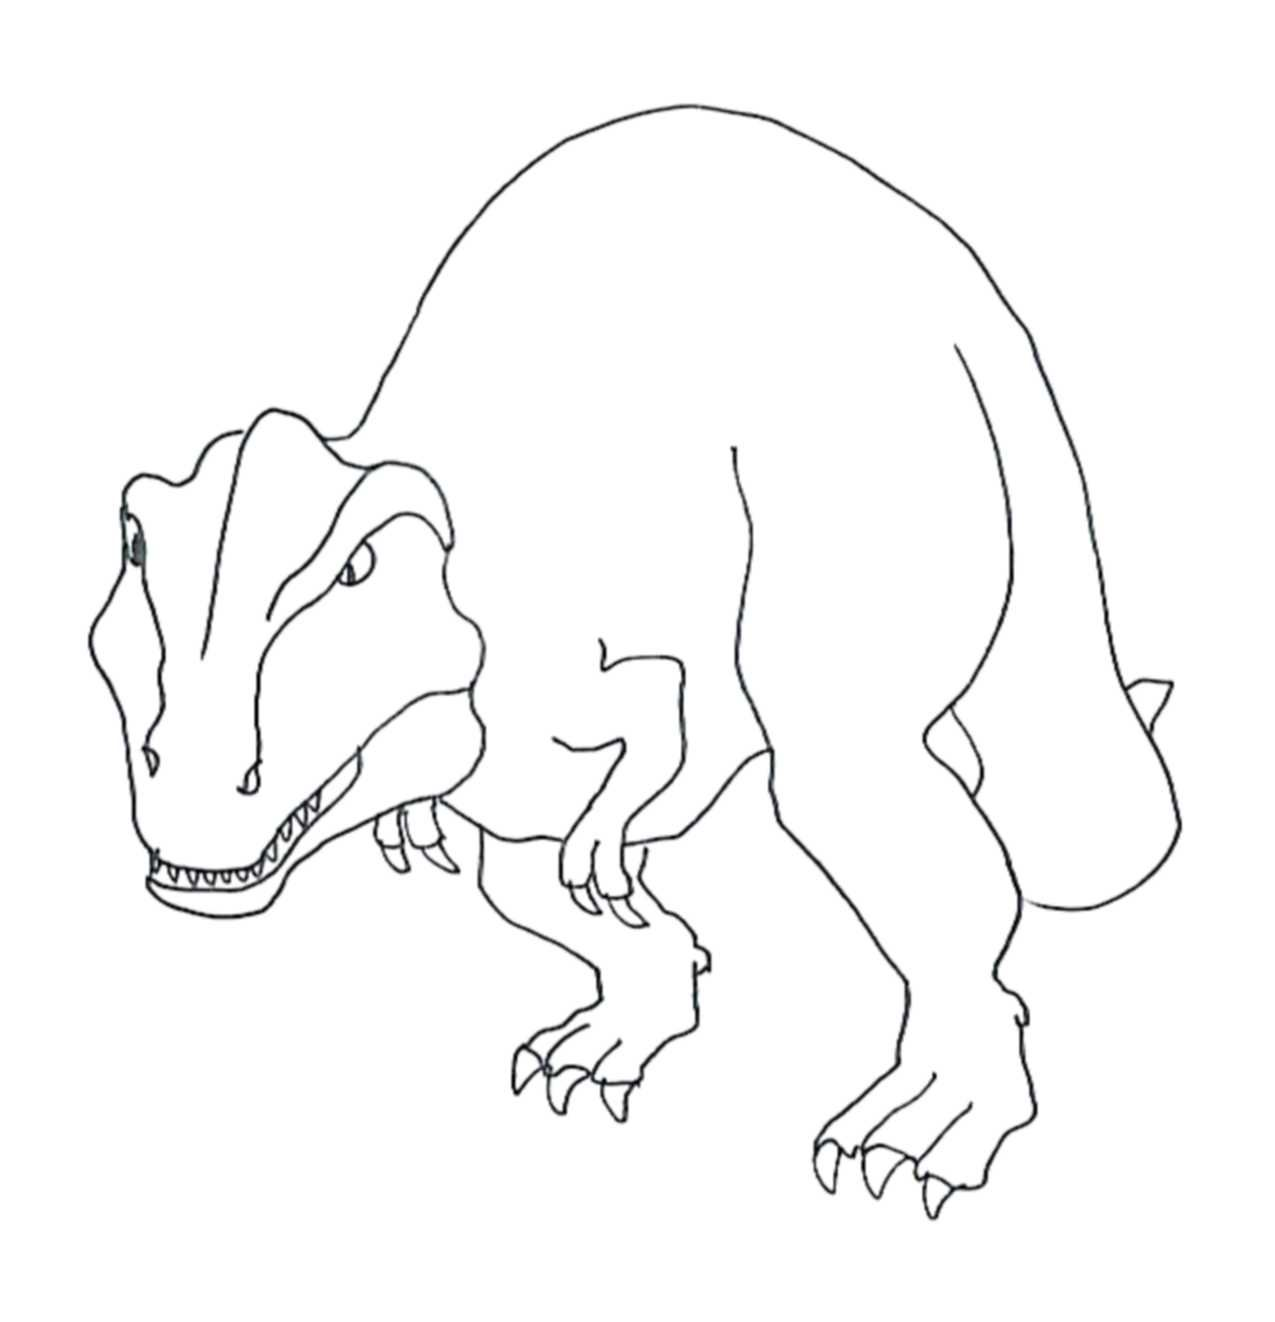 Tyrannosaurus Rex Coloring Pages | Kids Colouring Pages | Pinterest